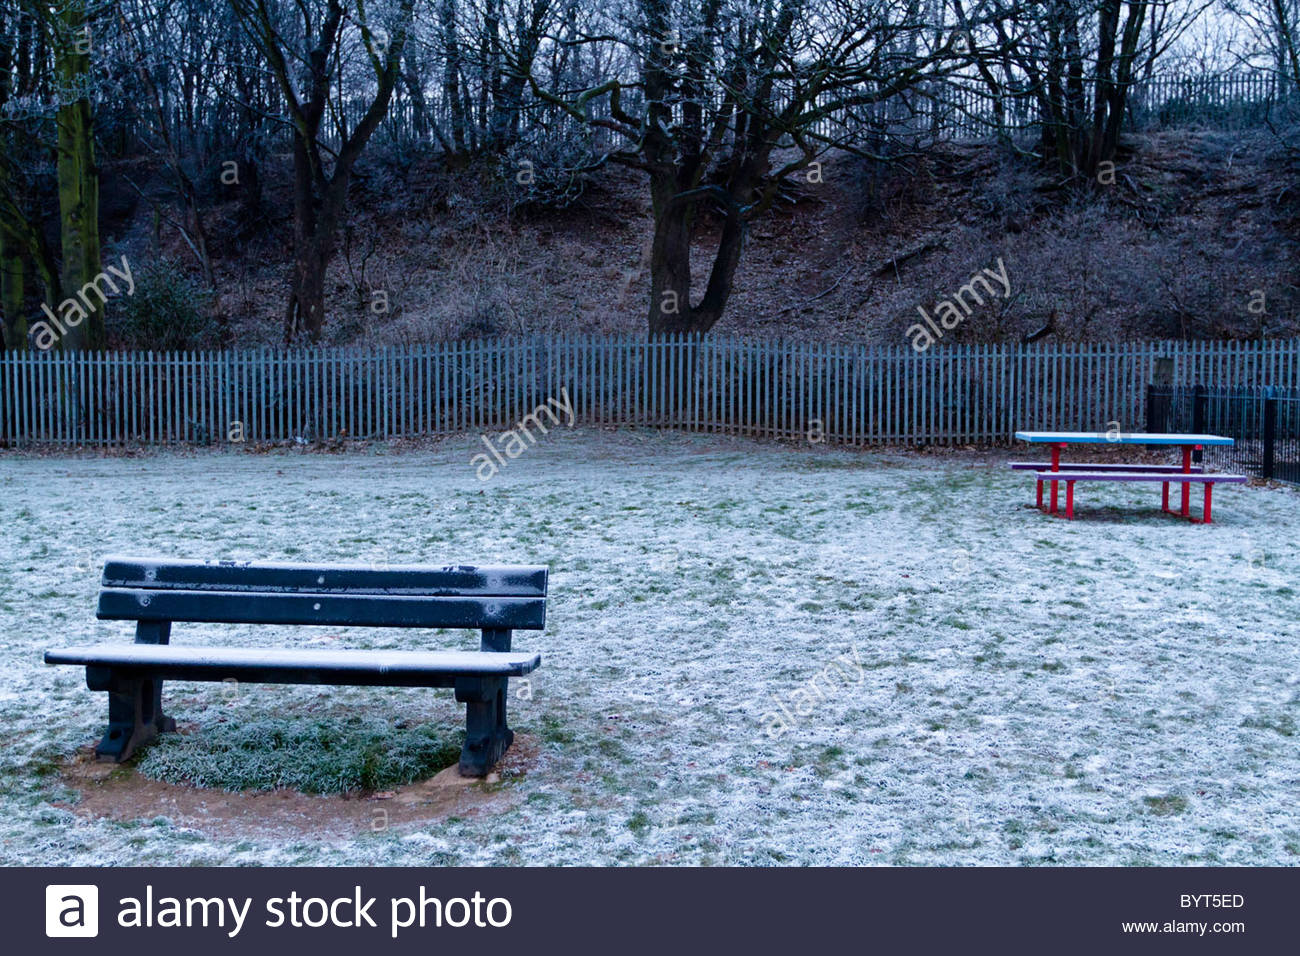 Miserable gloomy cold day in winter on a park, England, UK - Stock Image